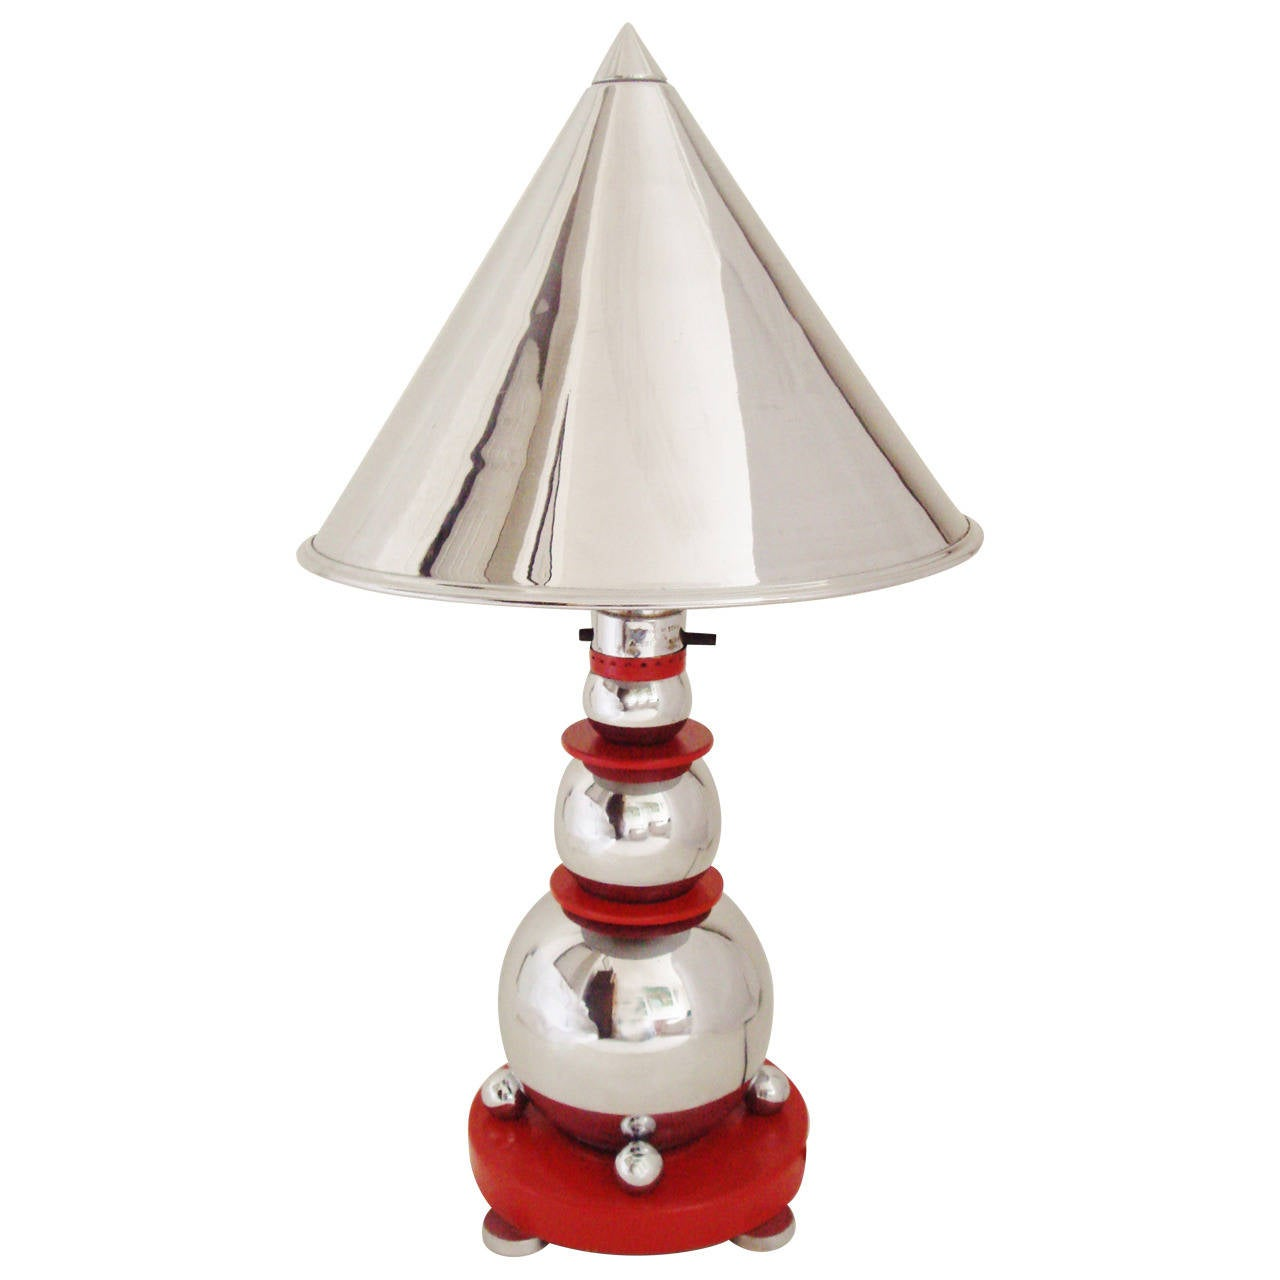 Rare Art Deco Chrome and Red Enamel Cone and Sphere Table Lamp by Electrolier